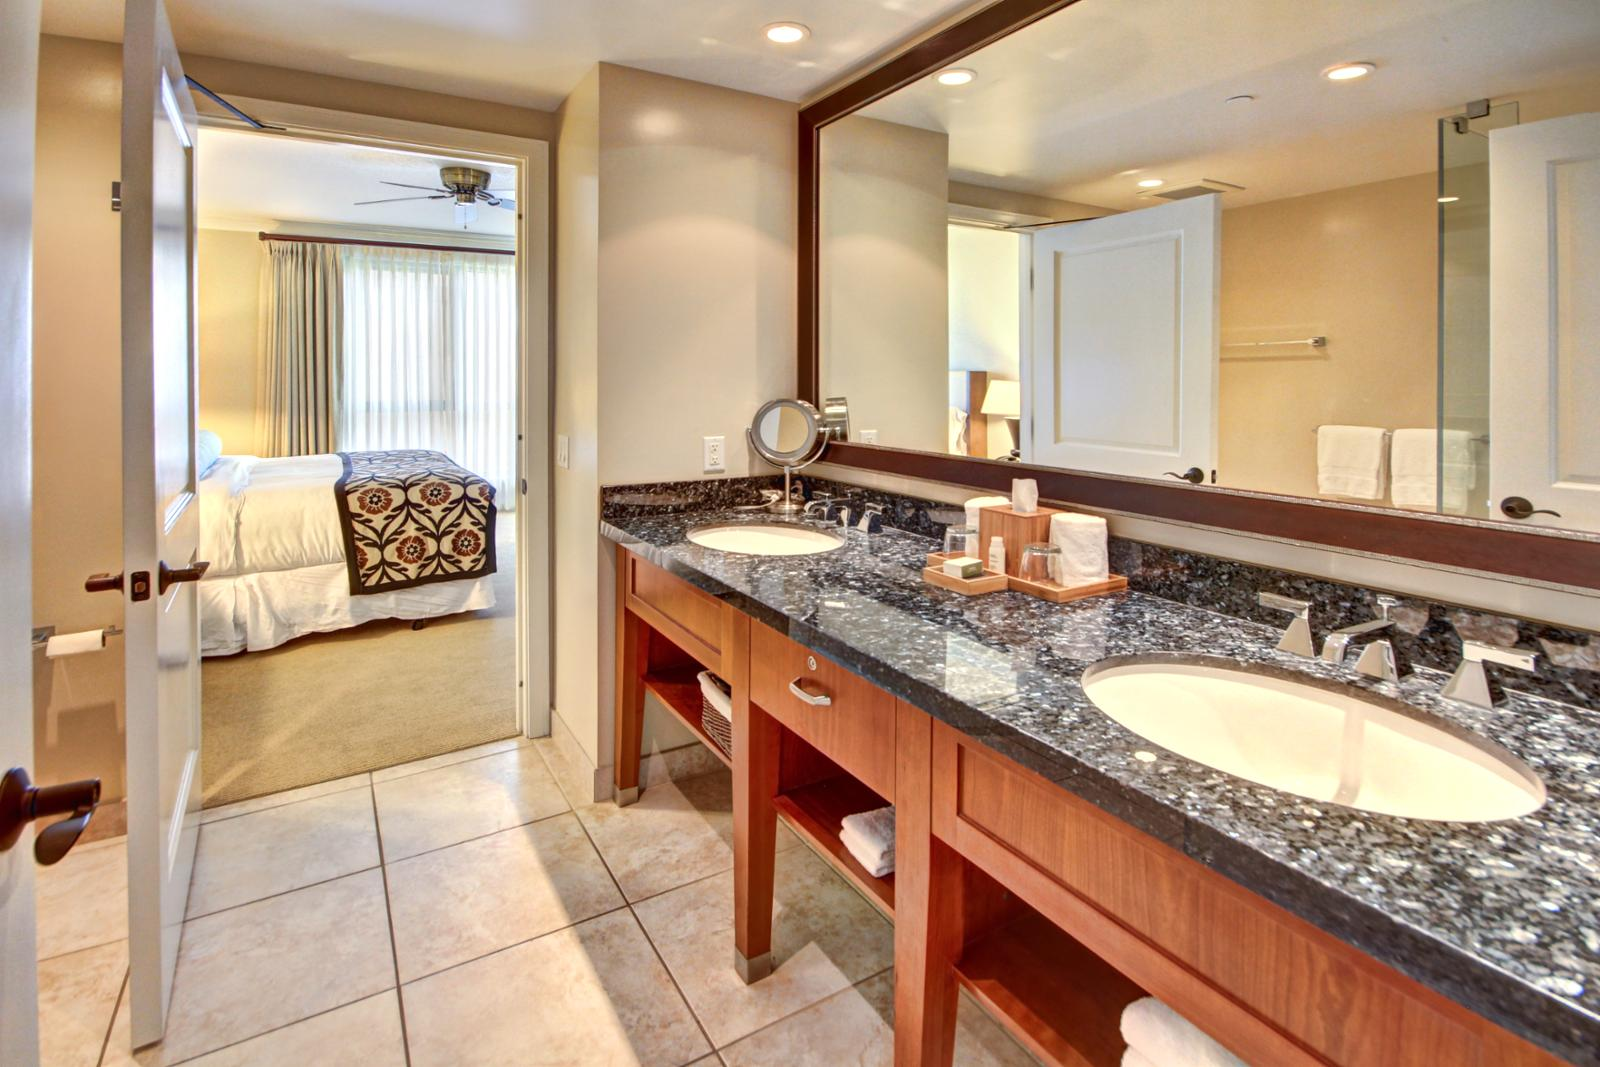 Private Entrance Into The Guest Bathroom From Bedroom Or Living Room